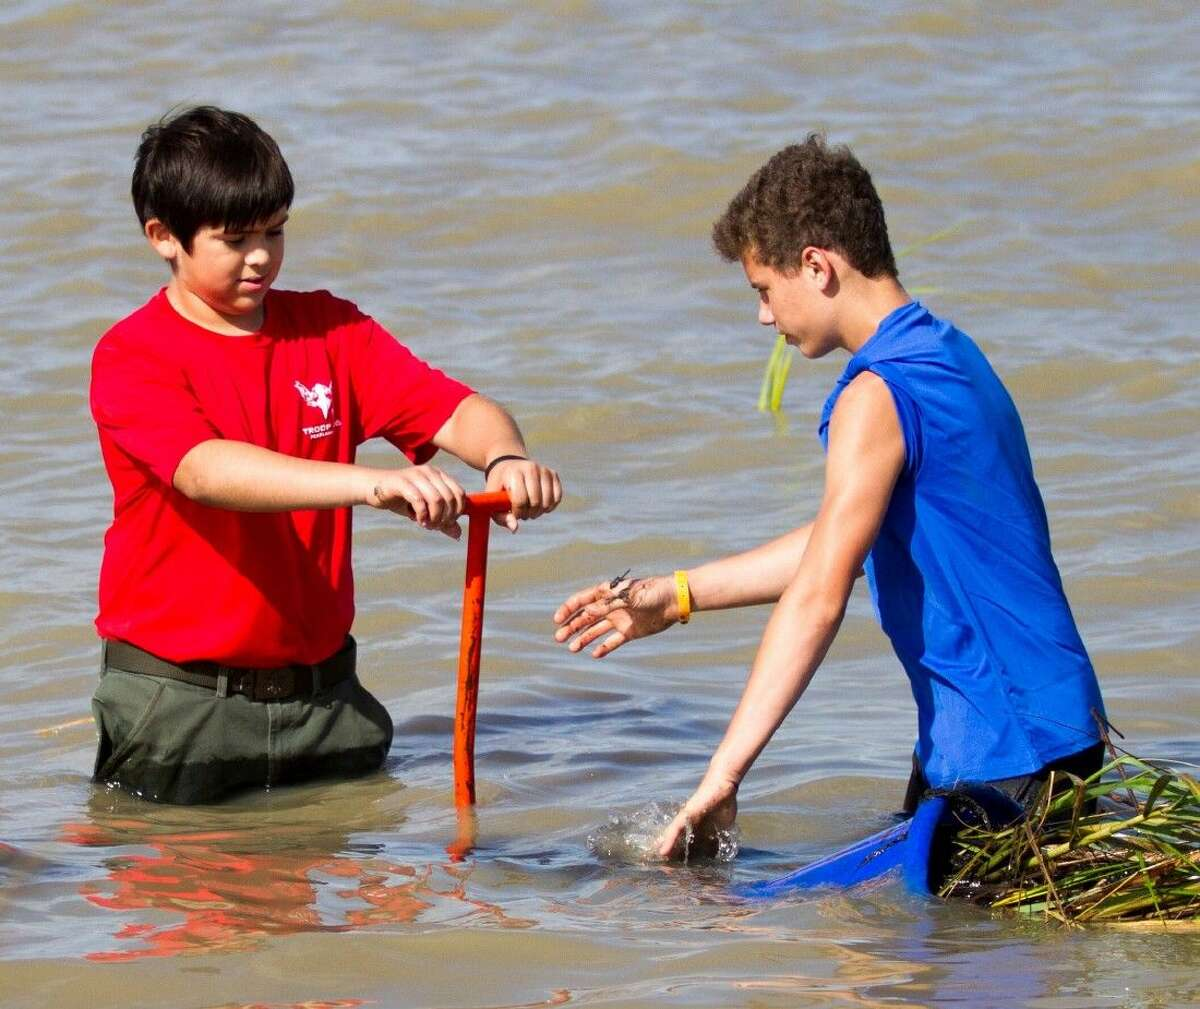 Ryan Rinhart (right) helps restore shoreline by planting marsh grass at a Galveston Bay Foundation marsh restoration event. Ryan will assist GBF on a habitat restoration project in Smith Point on Saturday, August 1, to support his goal of achieving an Eagle Scout Award.